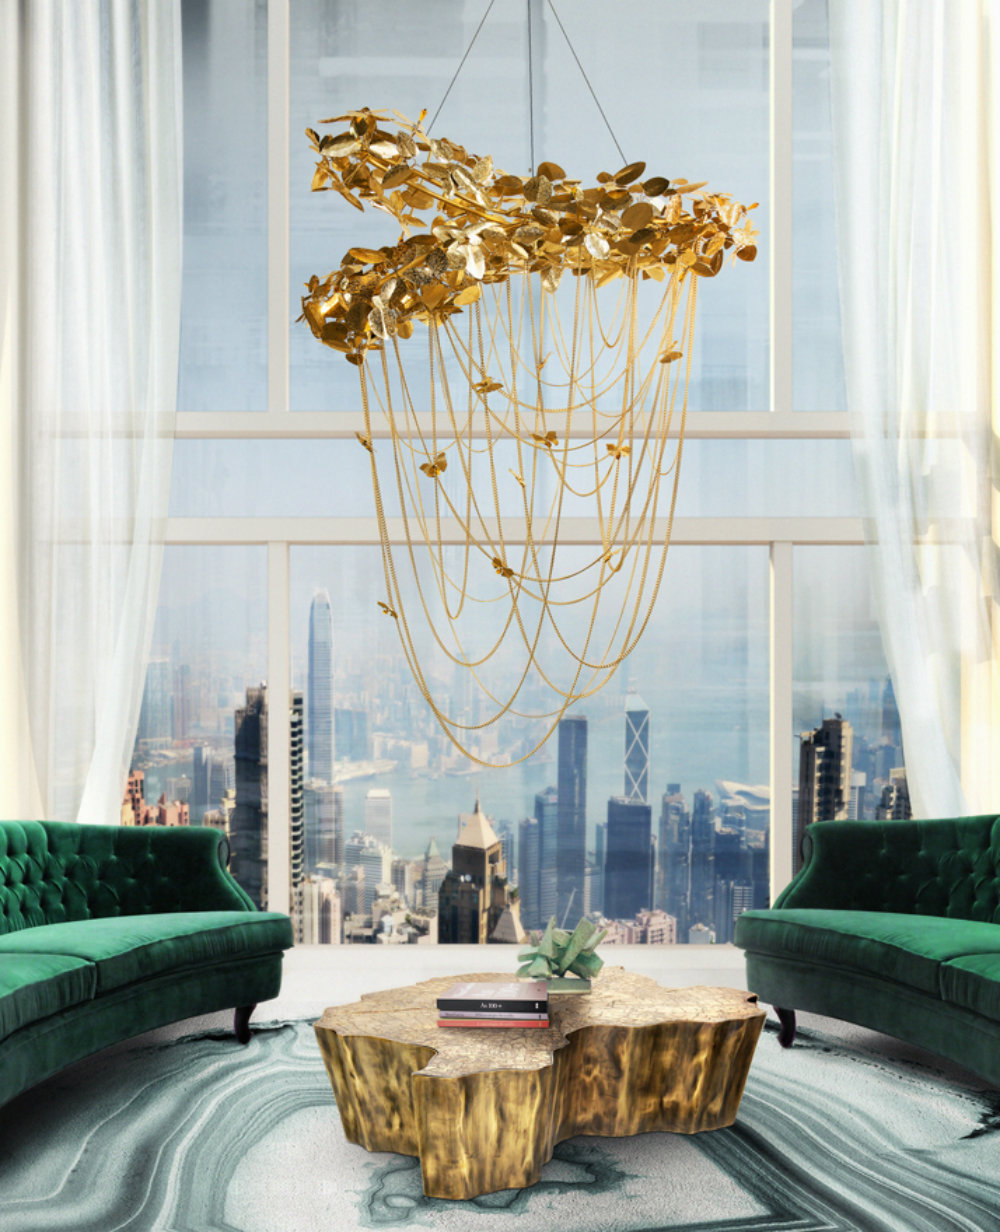 Dramatic Chandeliers You Need In Your Home 01 dramatic chandeliers Dramatic Chandeliers You Need In Your Home Dramatic Chandeliers You Need In Your Home 01